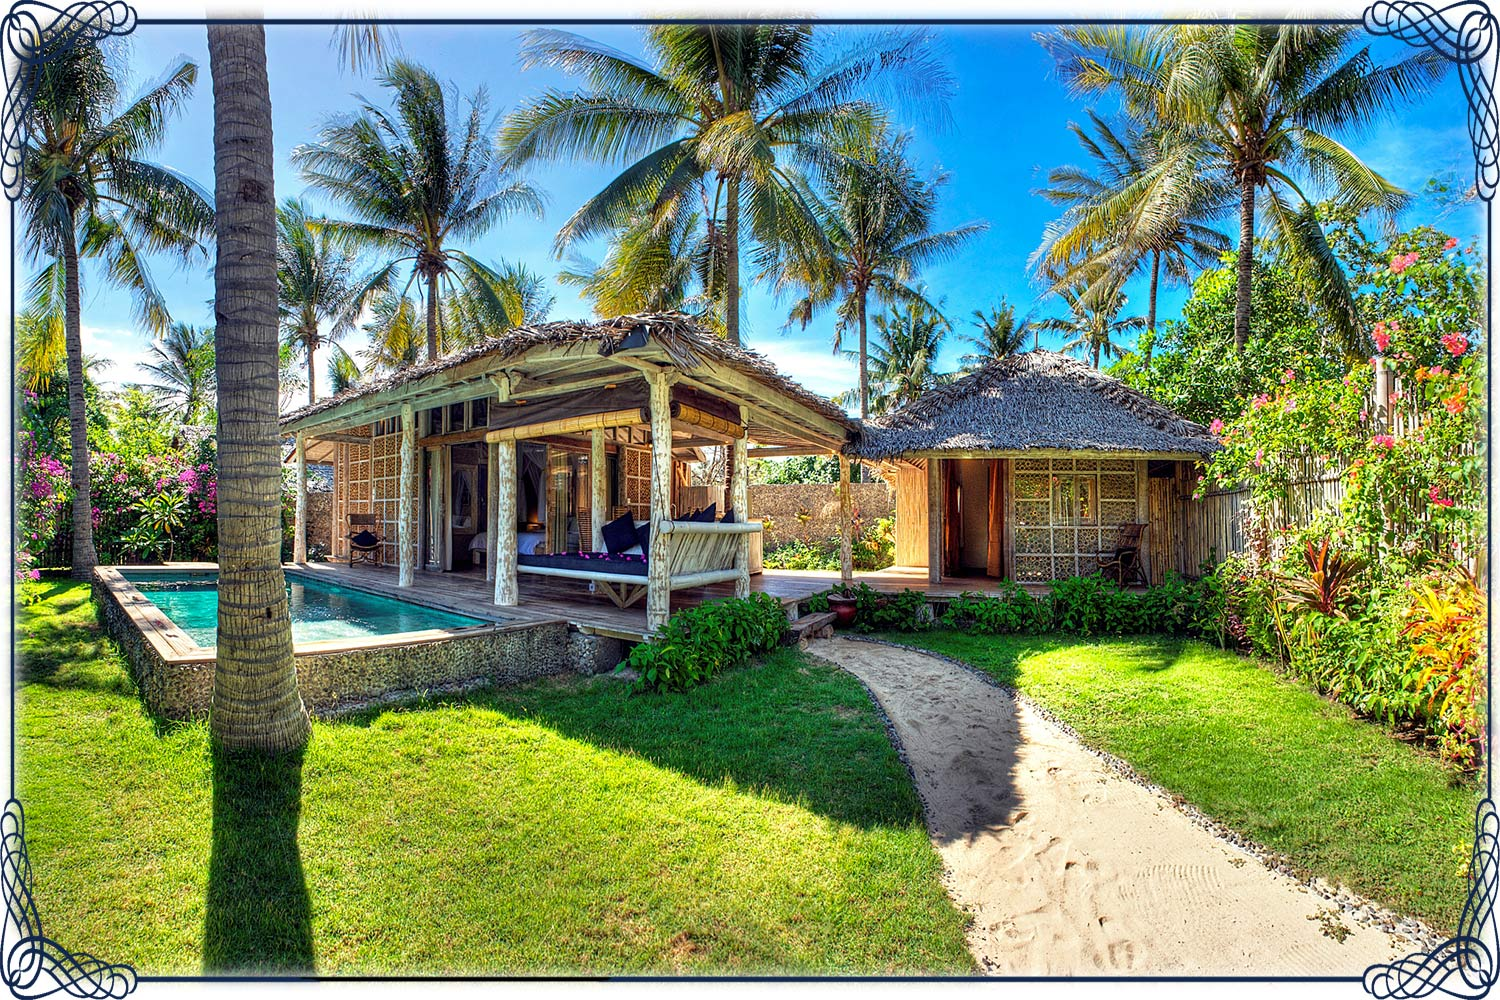 click to see the Villa Gili DELUXE 2 BEDROOMS